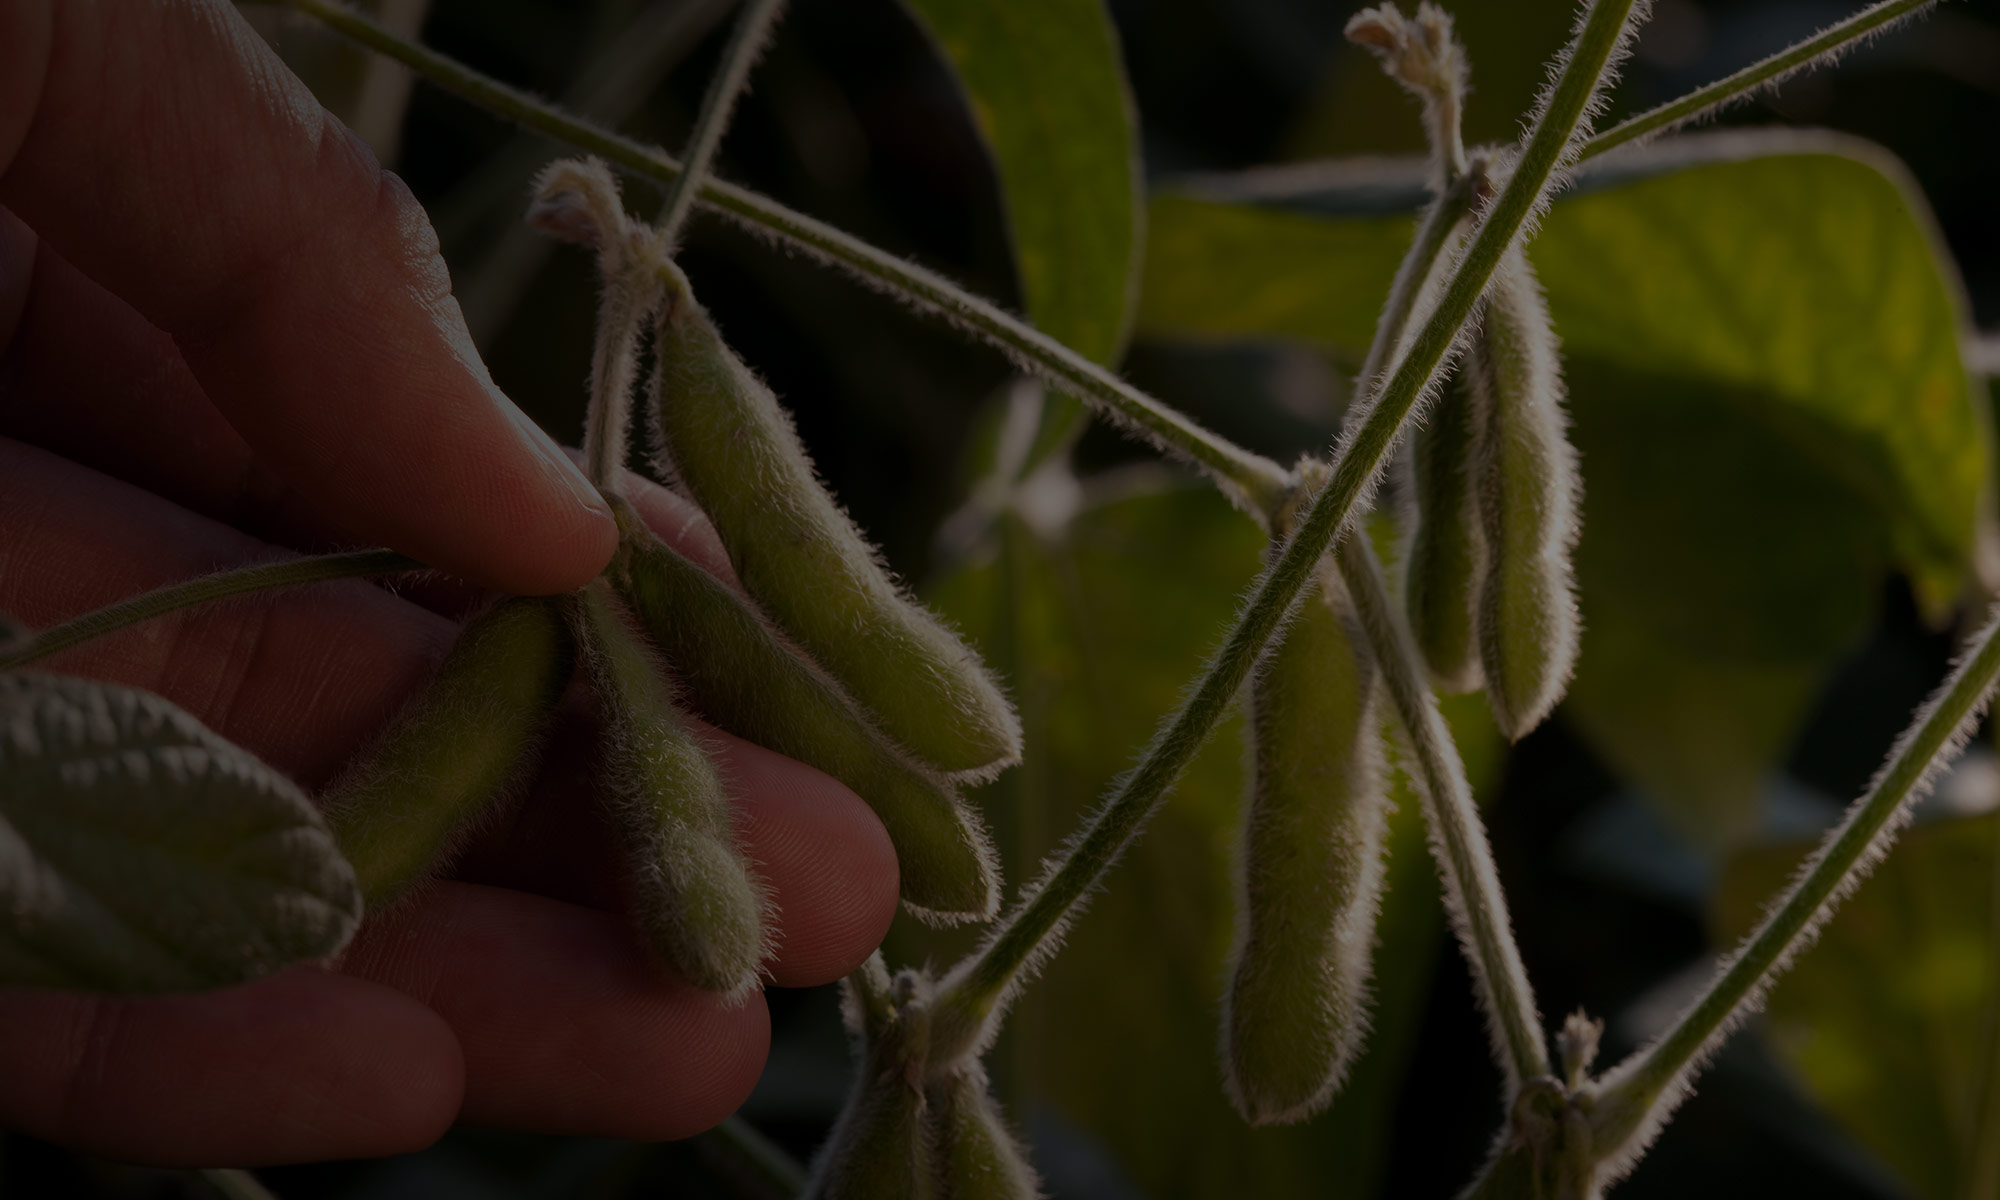 Final-Step-for-Global-Trade-High-Oleic-Soybean-Recieve-EU-Approval